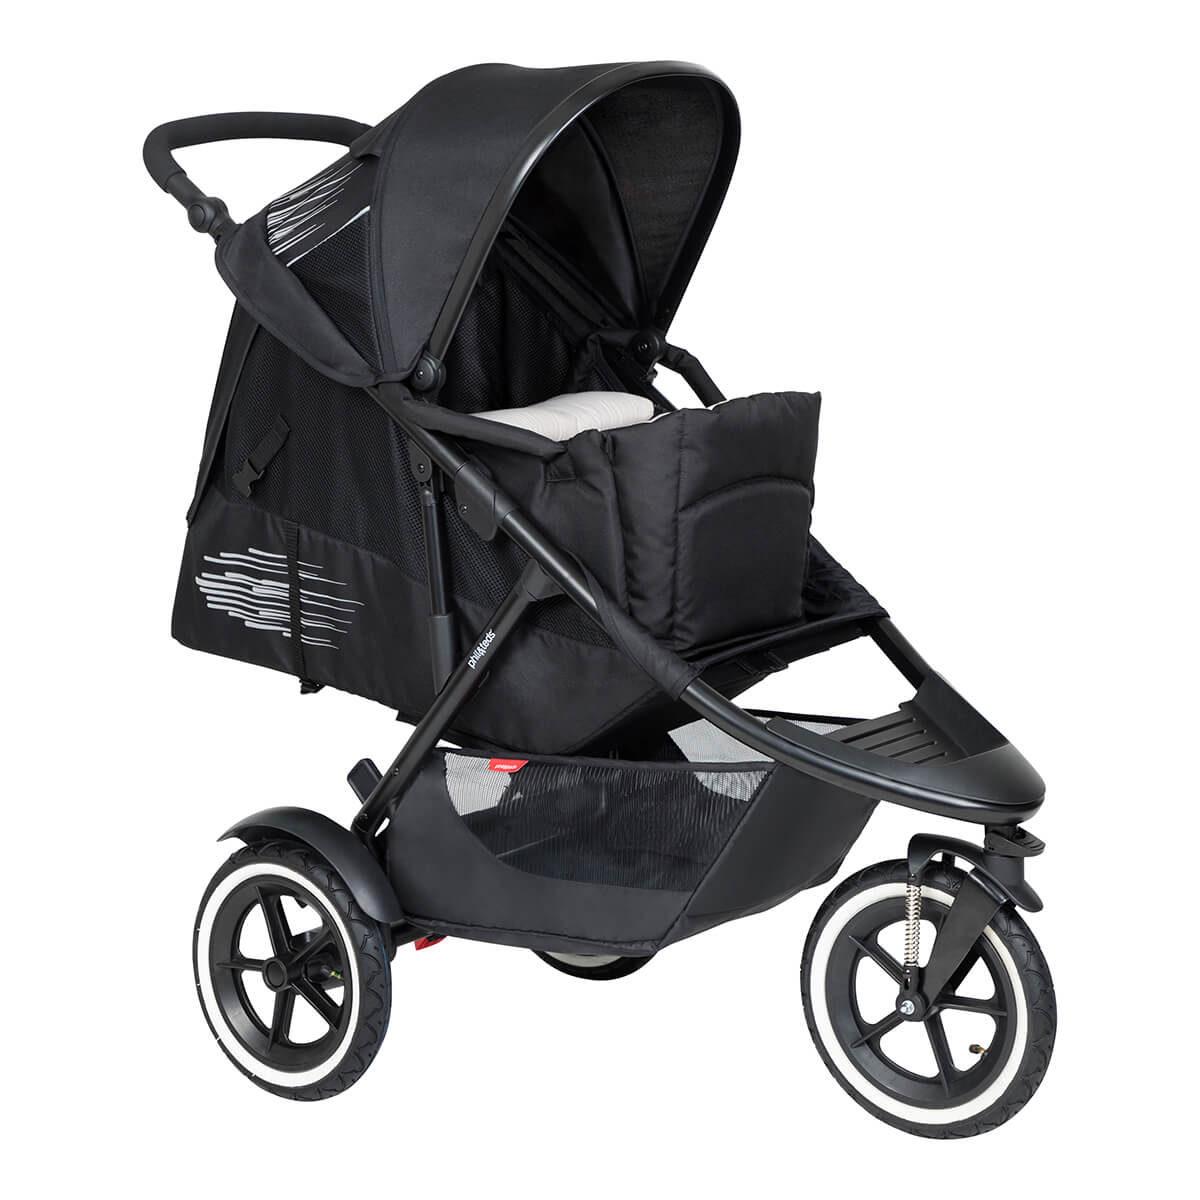 https://cdn.accentuate.io/4509899980877/19466203660482/philteds-sport-buggy-with-cocoon-full-recline-v1626485377976.jpg?1200x1200